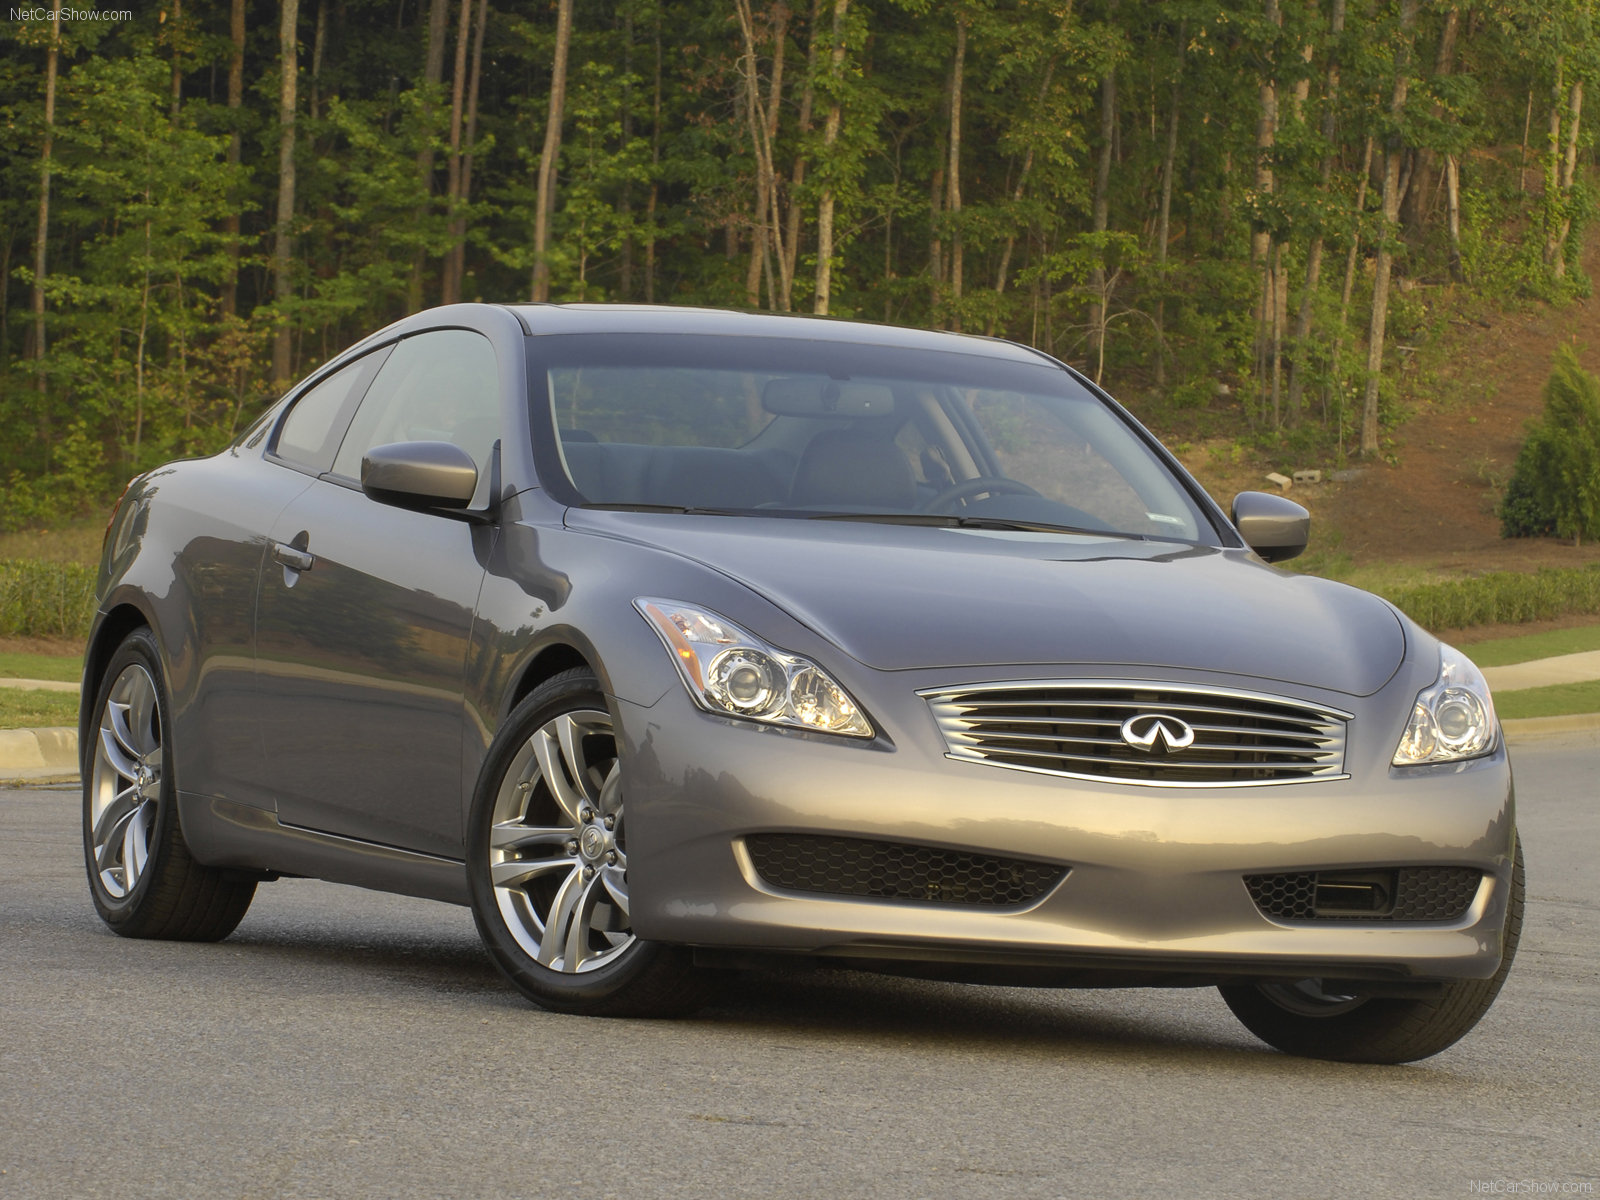 2018 infiniti g37 coupe. unique 2018 new infiniti g37 coupe pictures to 2018 infiniti g37 coupe